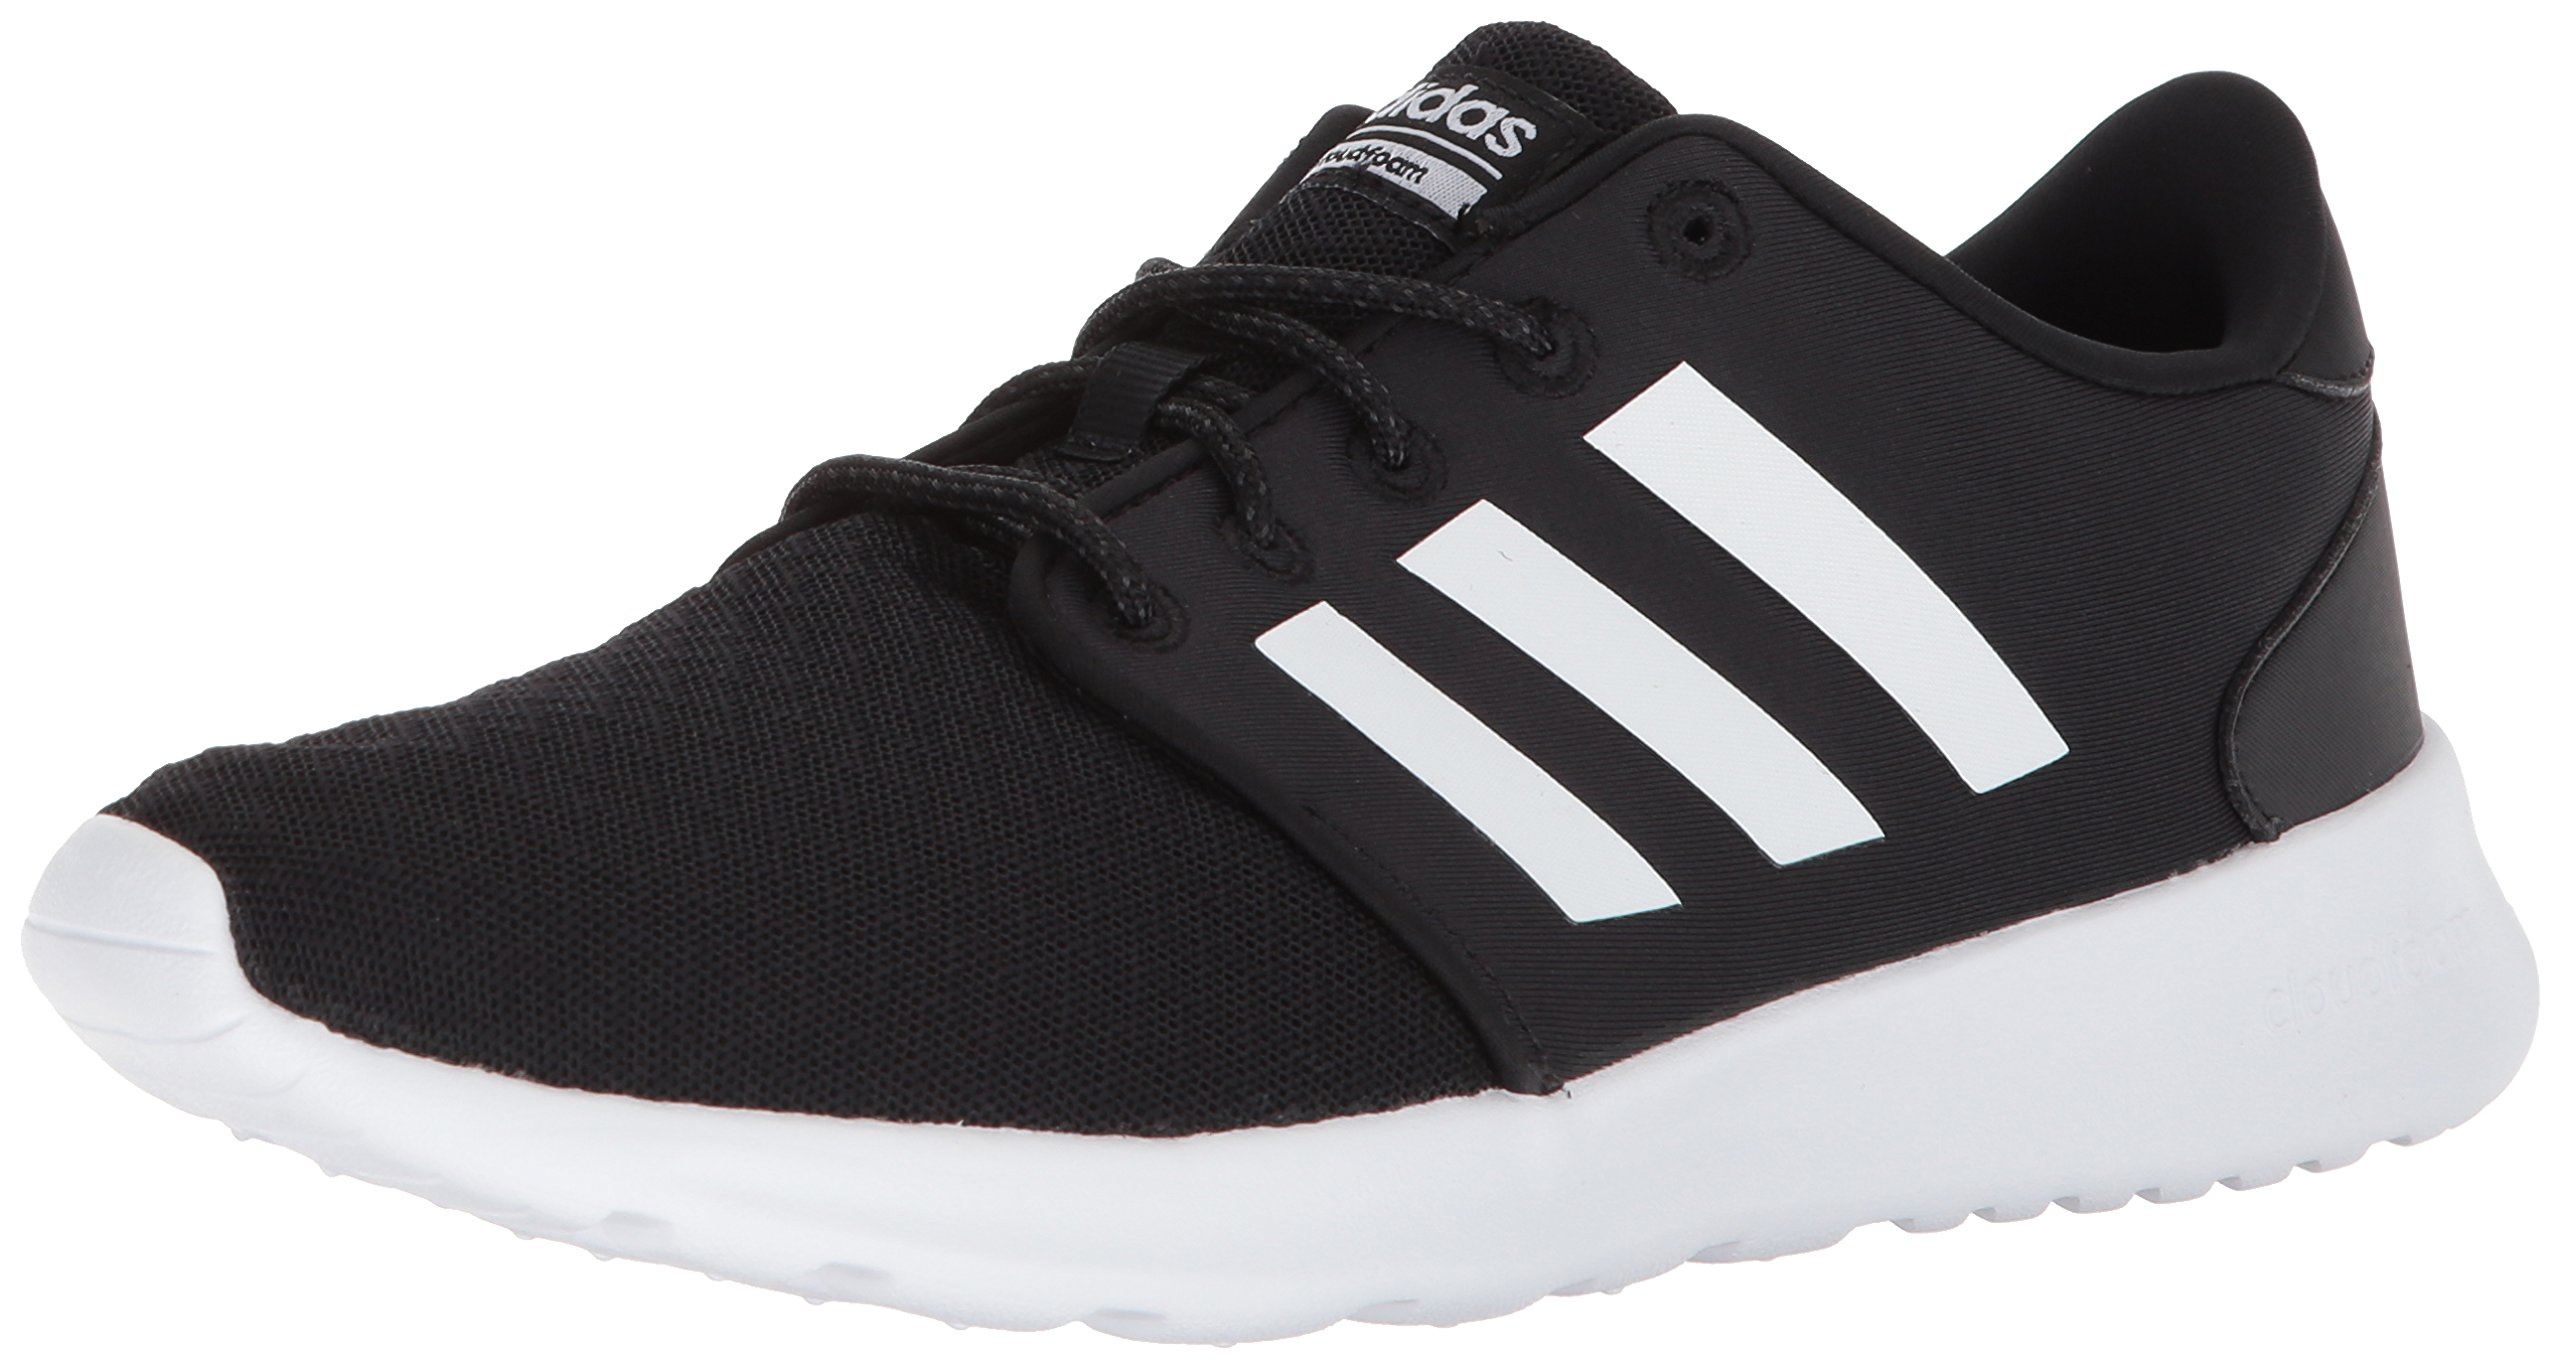 adidas Women's Cloudfoam QT Racer Running Shoe, Black/White/Carbon, 5 M US